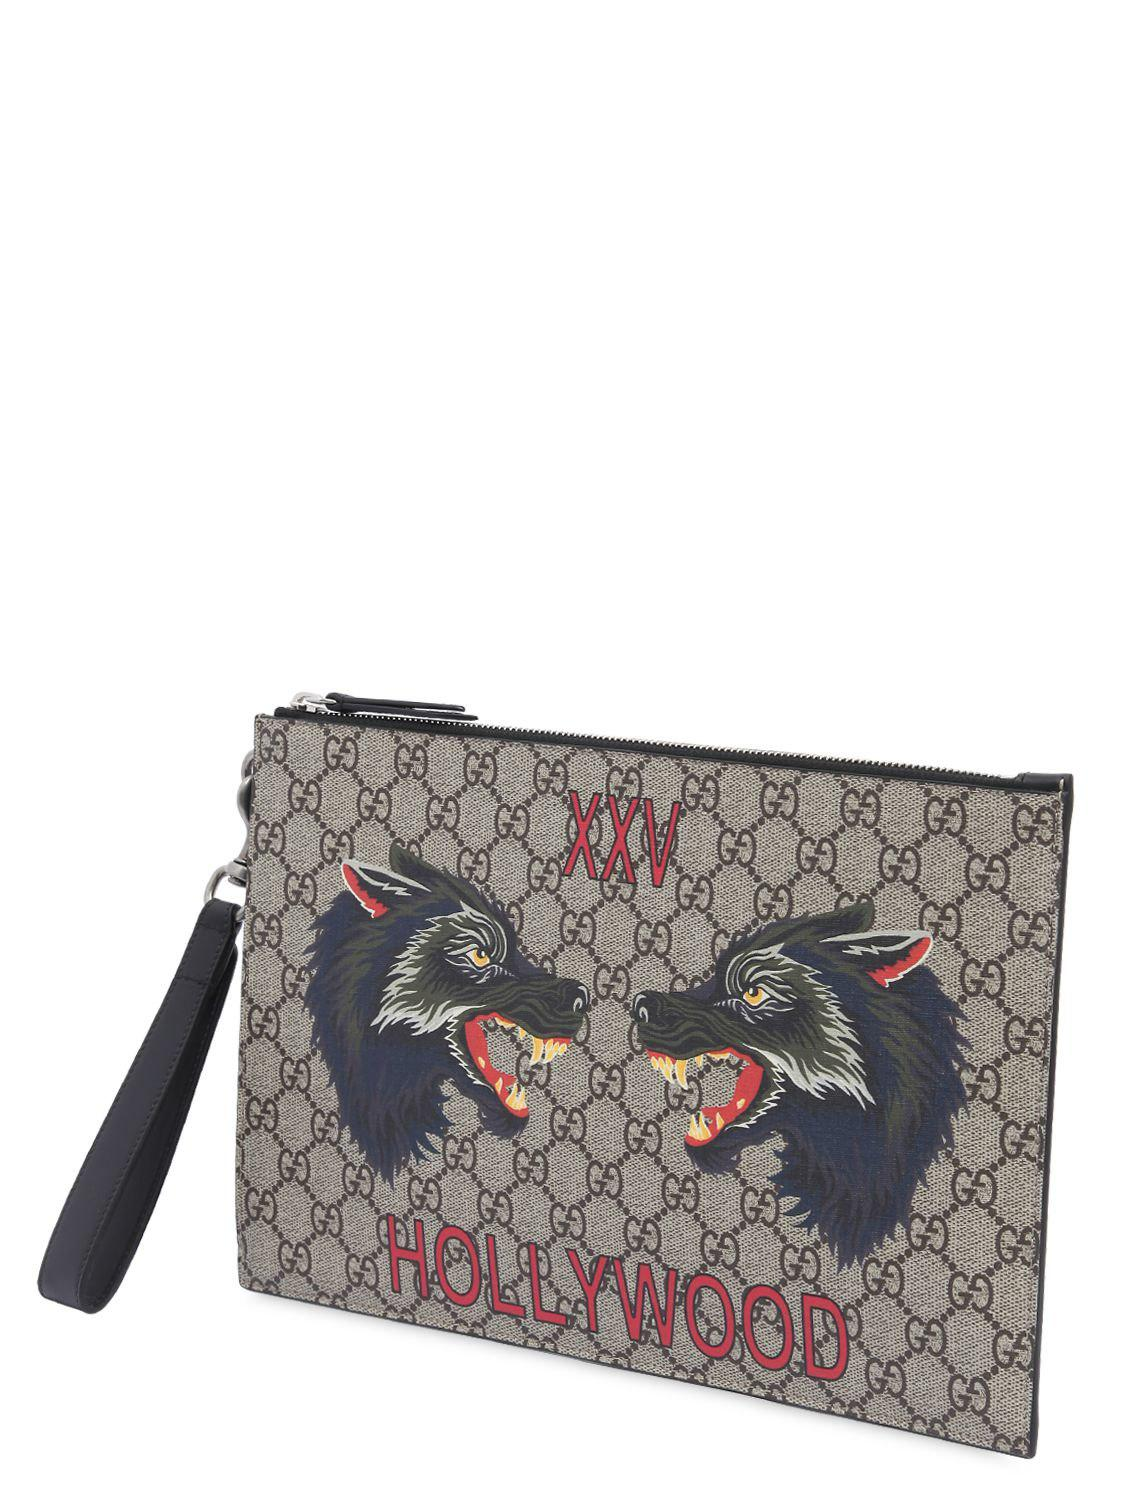 25720c5f19fb Gucci Wolves Printed Gg Supreme Pouch in Natural - Lyst